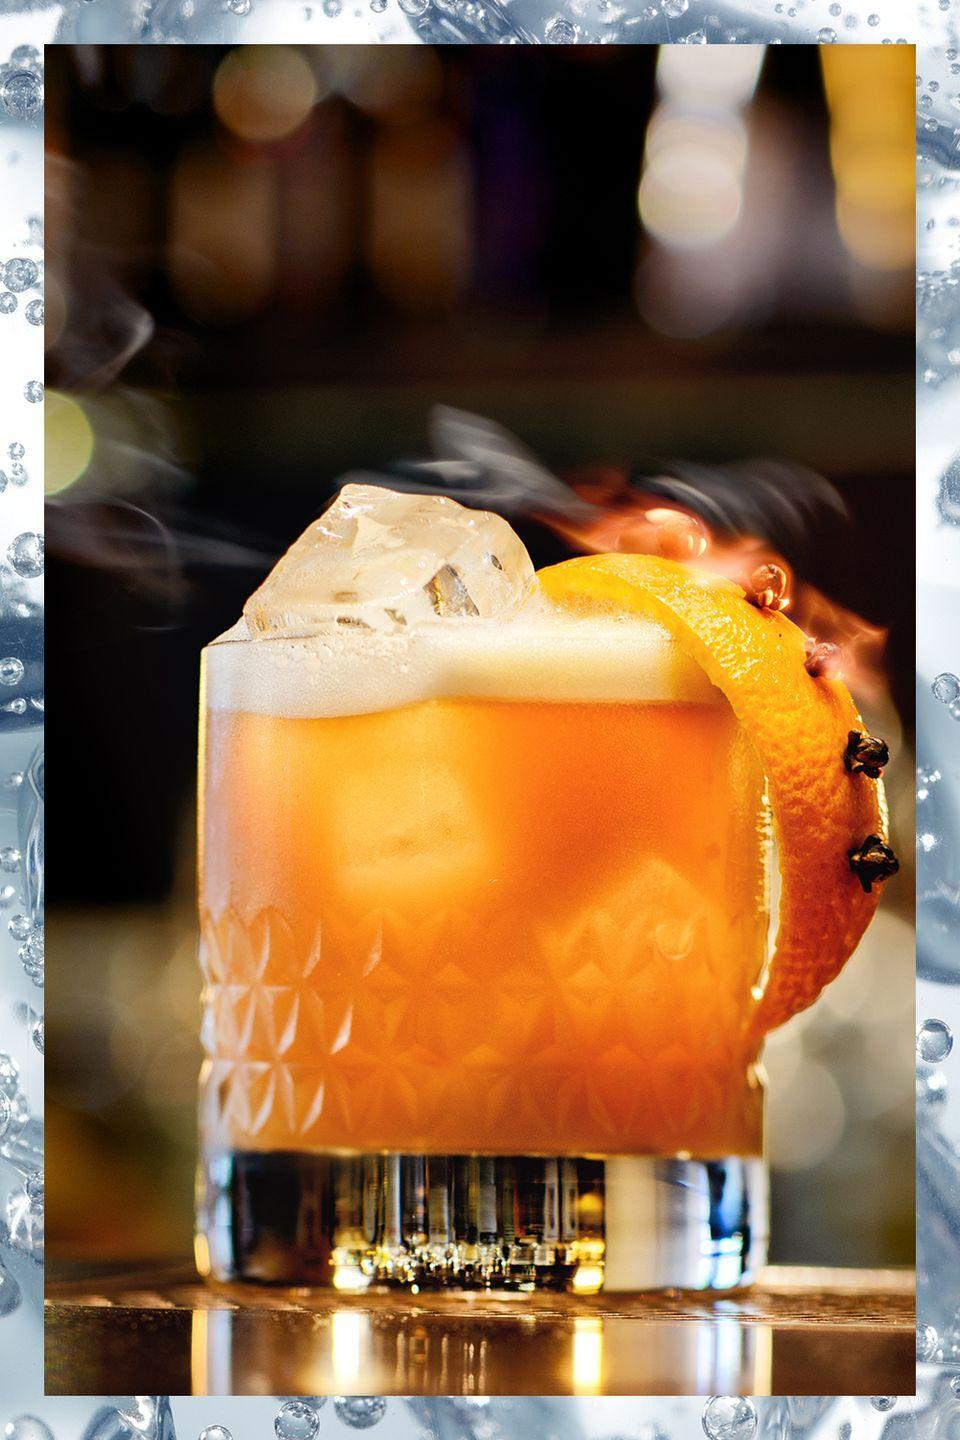 """<p>Perhaps the most refreshing whiskey cocktail, this is an old reliable favorite.</p><p>- 2 oz whiskey<br>- 1 oz lemon juice<br>- 1 tsp sugar<br>- 1 egg white (optional)</p><p><em>Combine ingredients in a cocktail shaker and shake (bartenders use this """"dry shake"""" to incorporate the egg white). Add ice and shake again. Strain over ice in a rocks glass.</em></p>"""